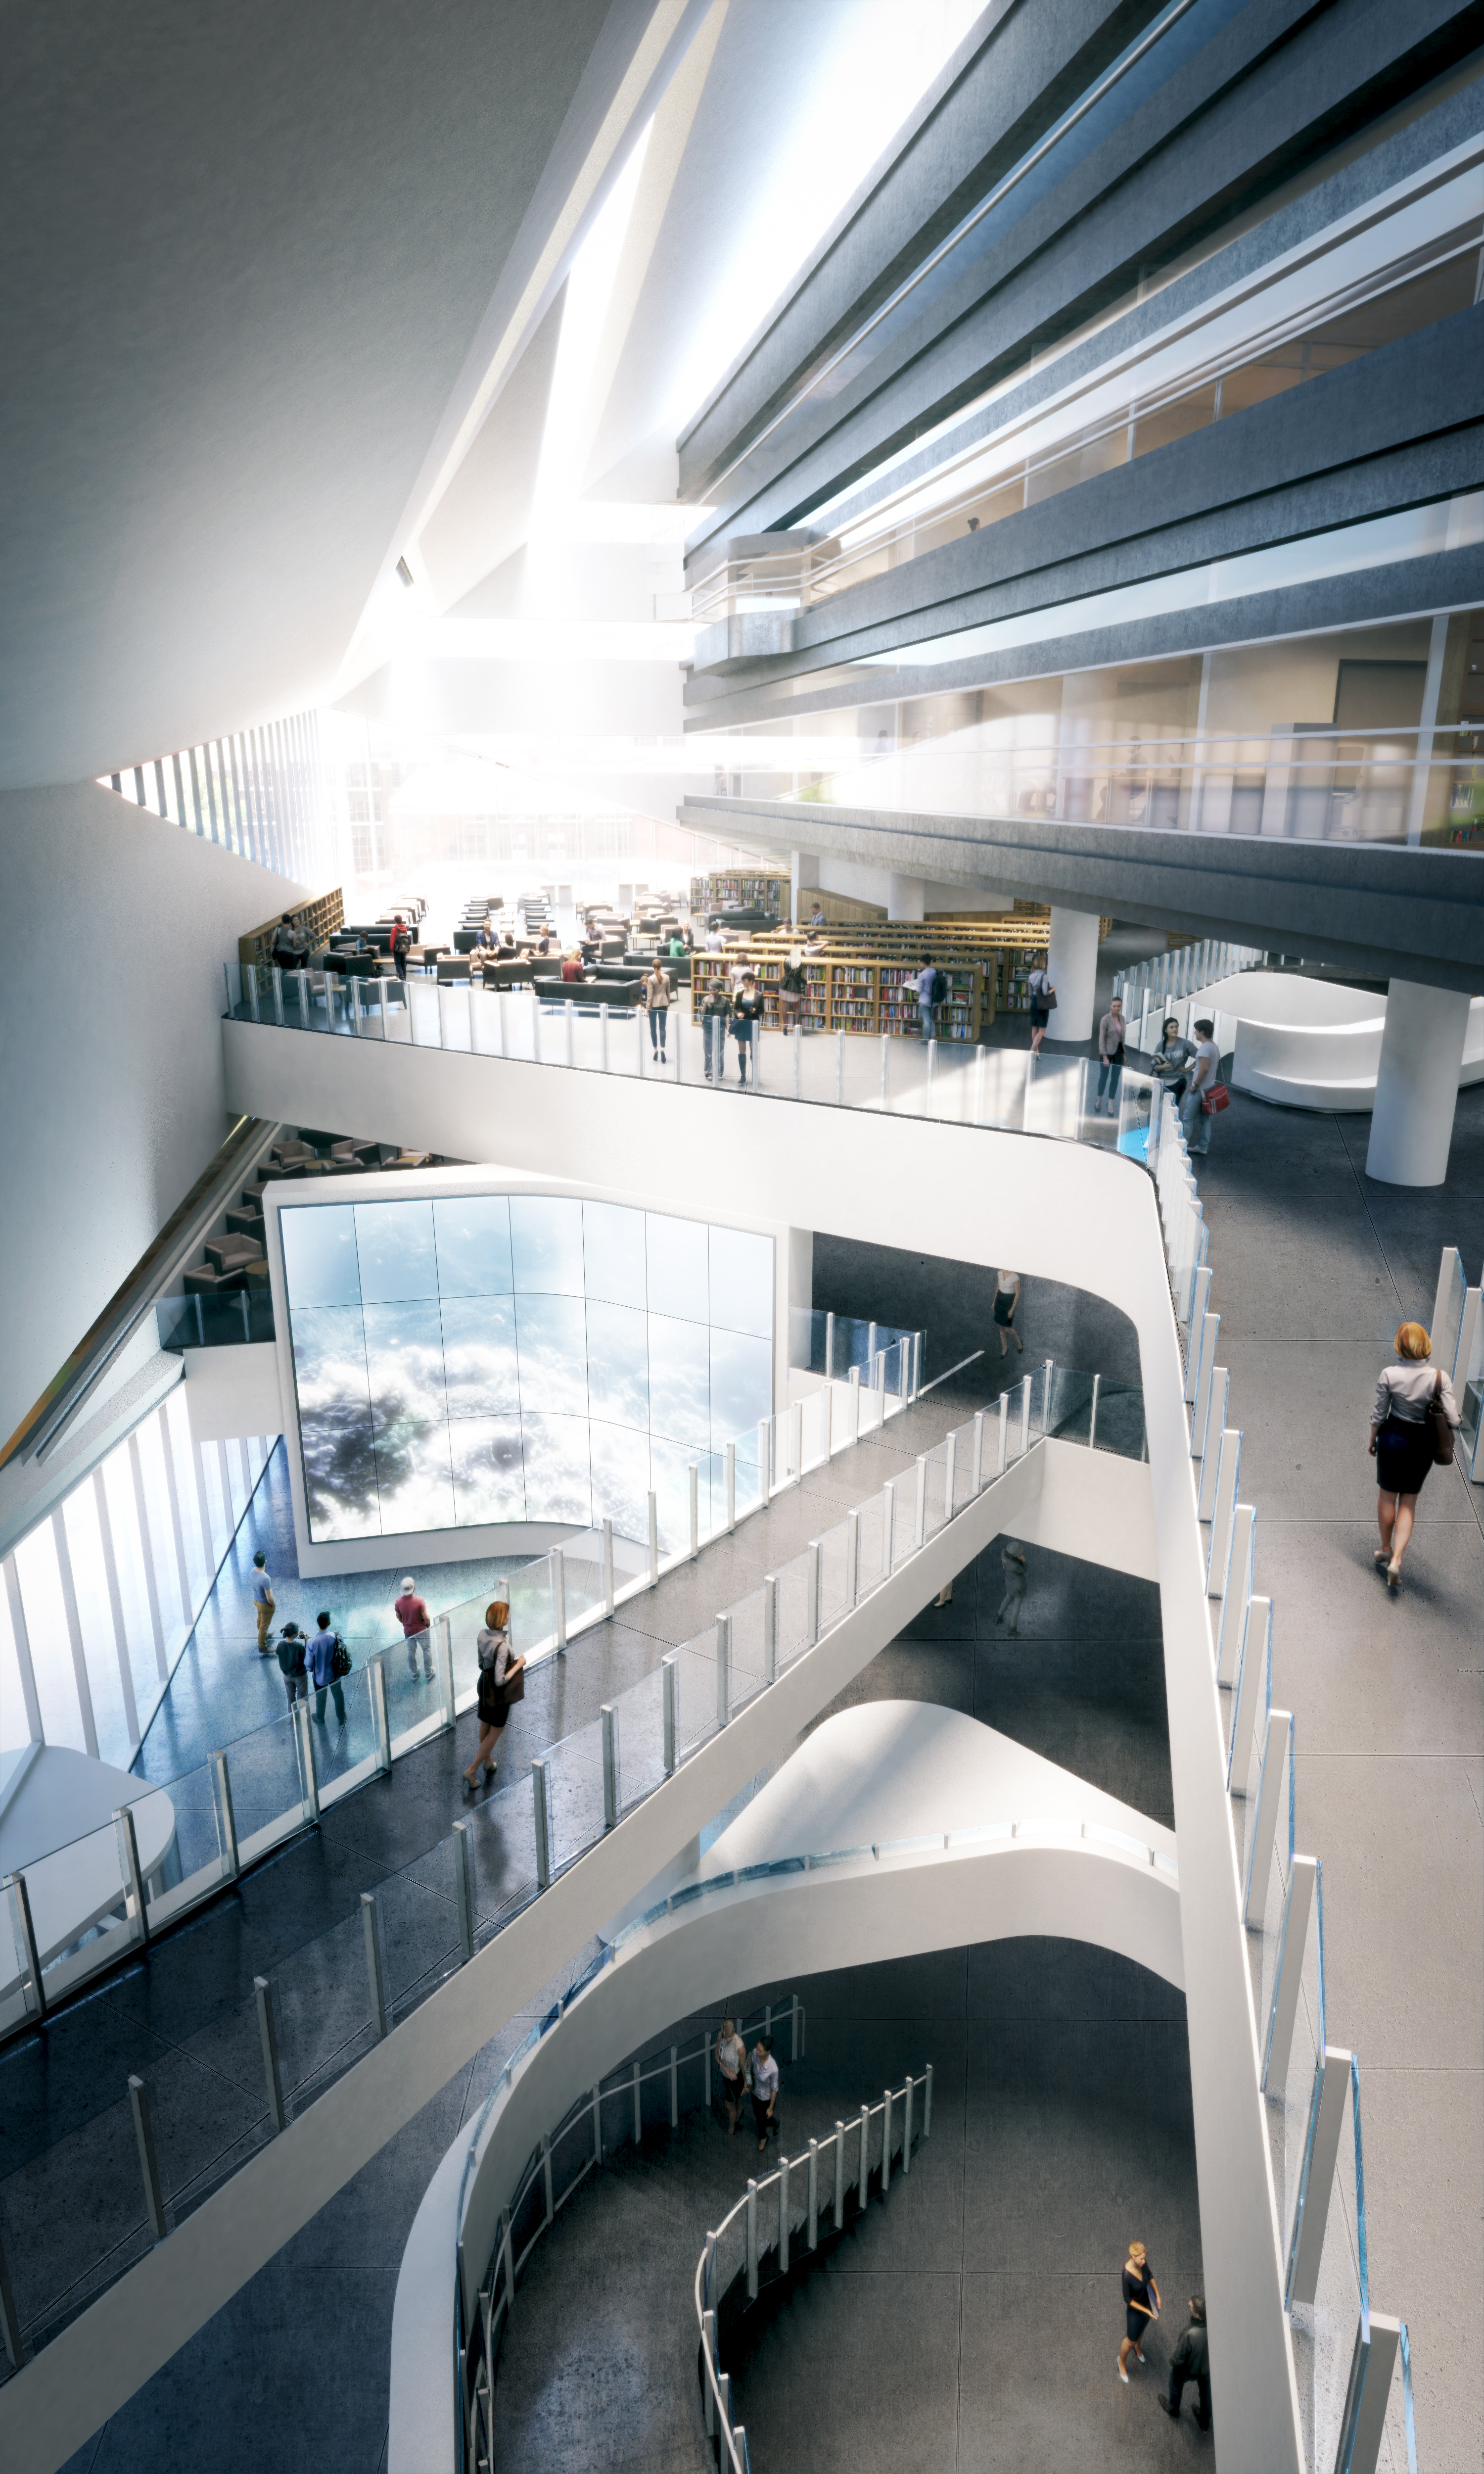 Atrium space within the Stanley A. Milner Library Renewal. Rendering by Norm Li.